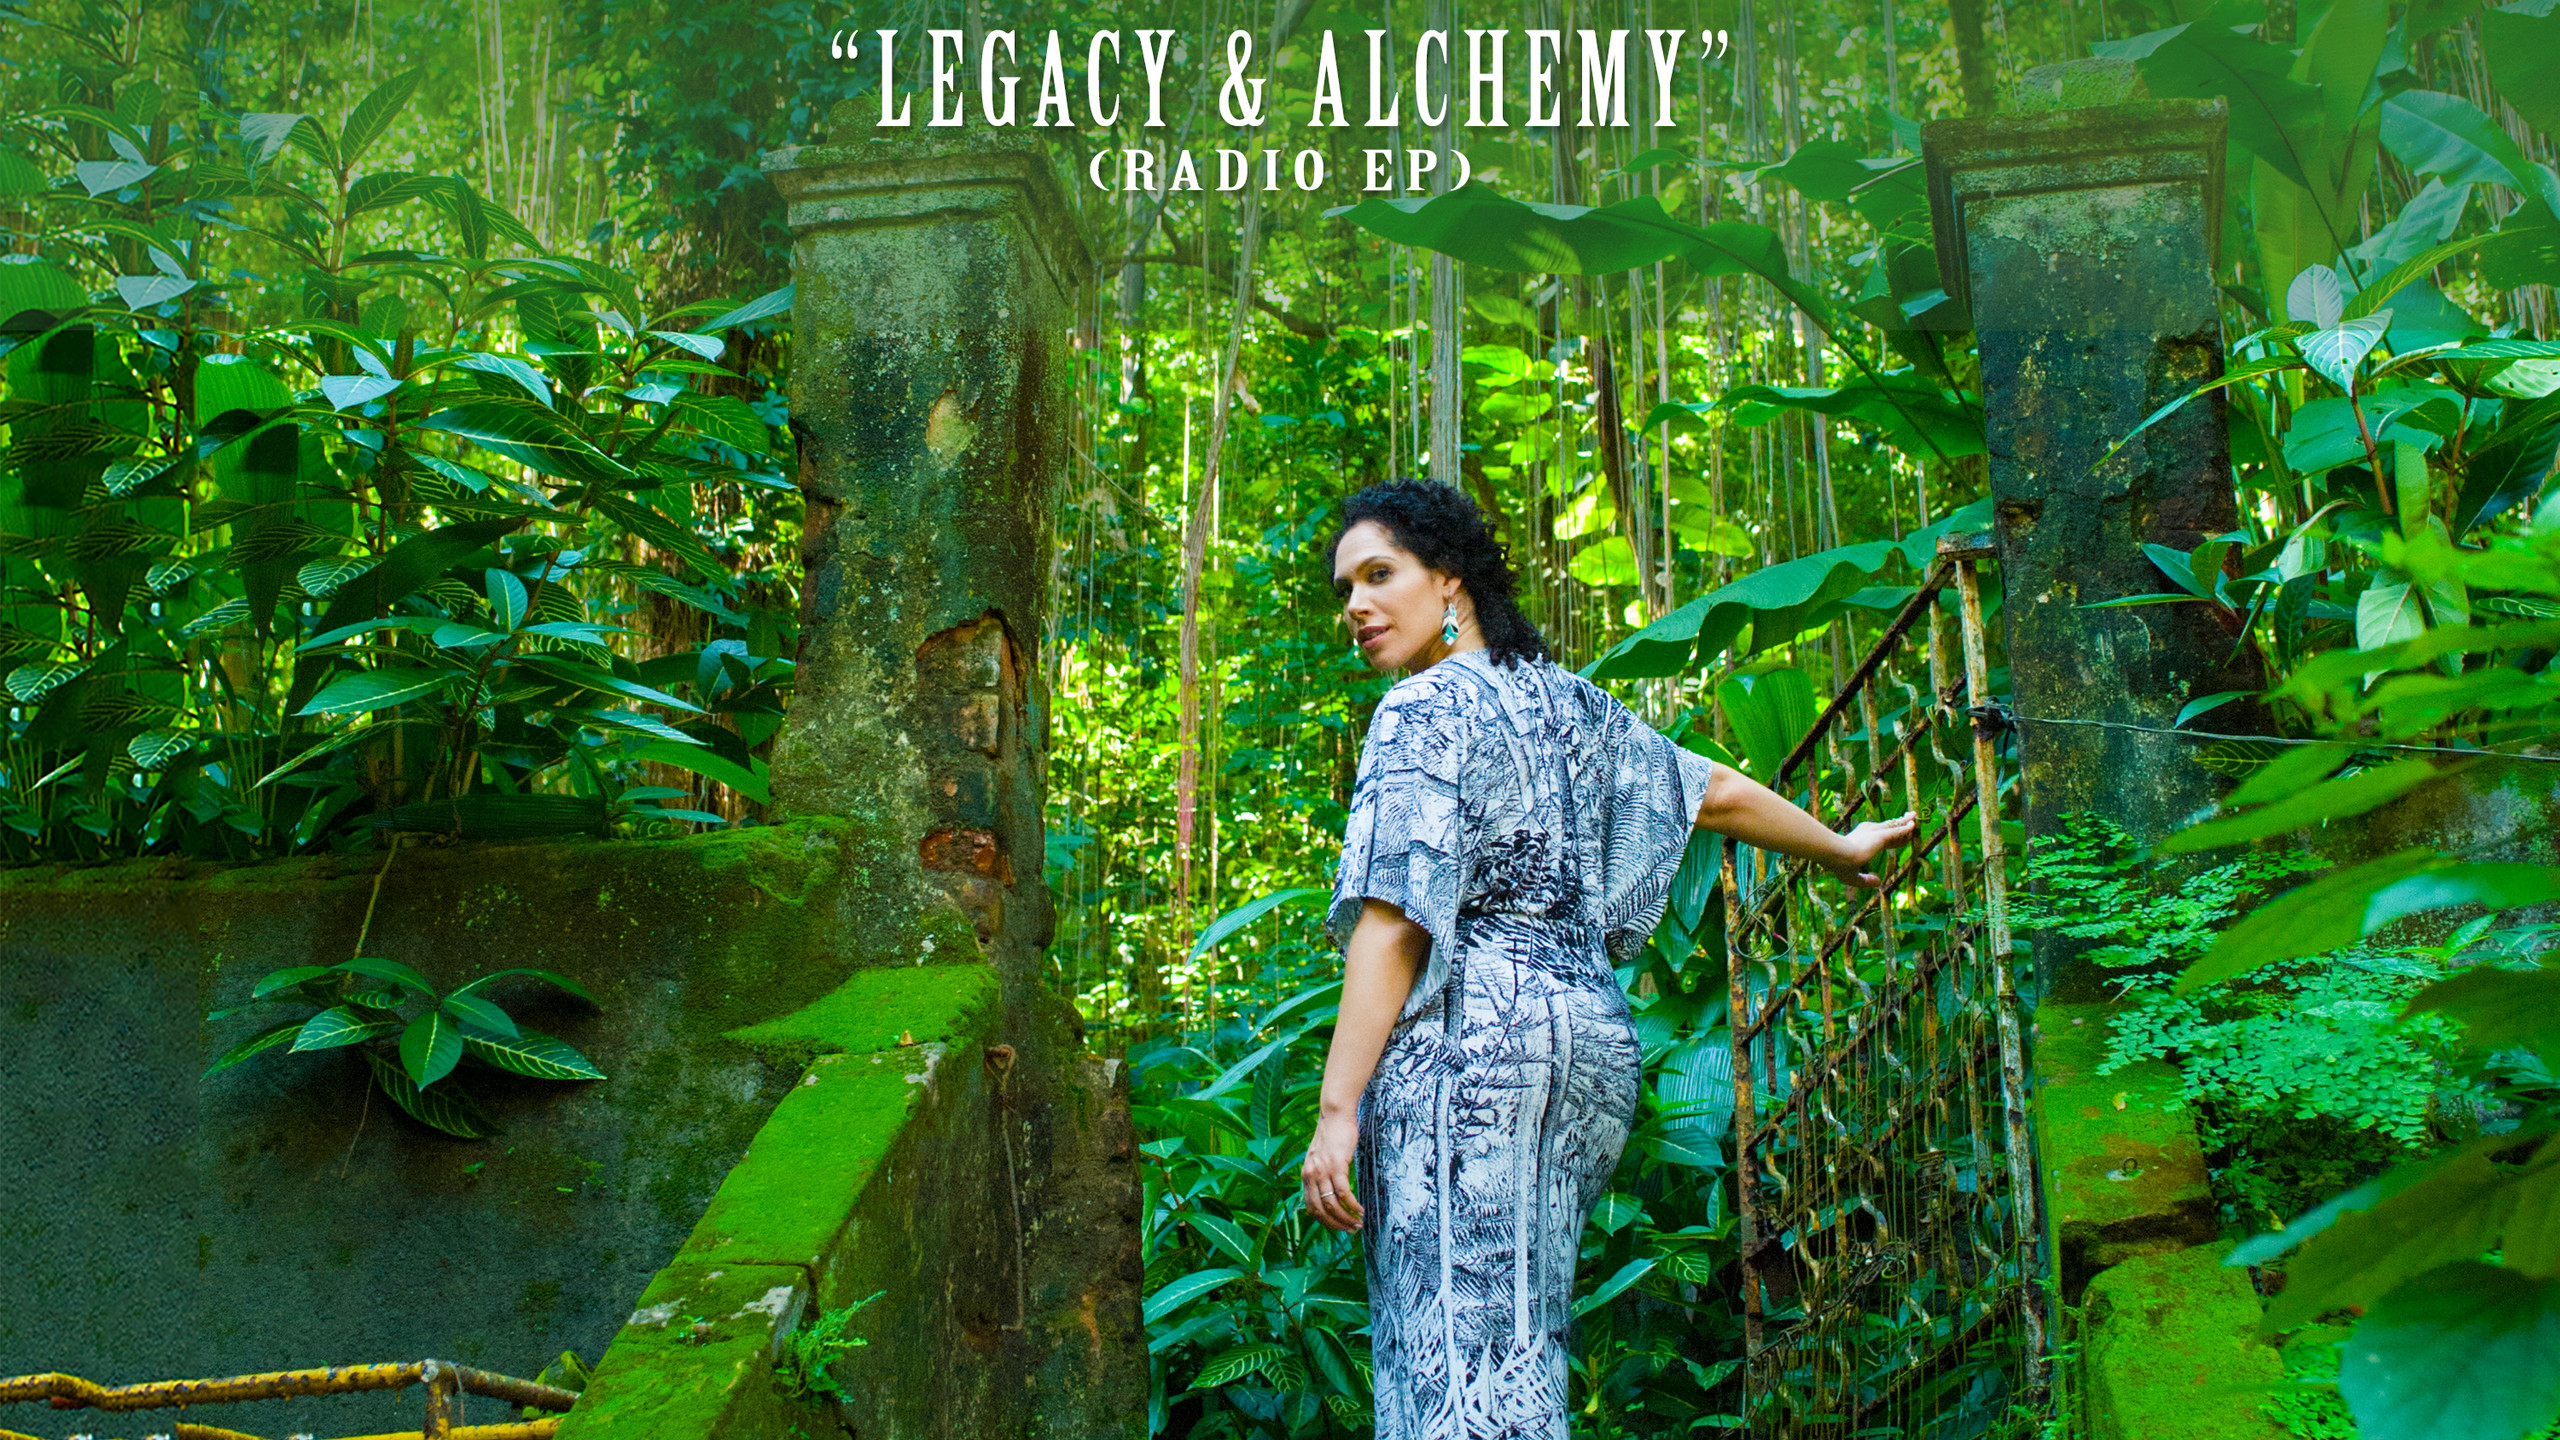 Legacy Alchemy Radio EP cover